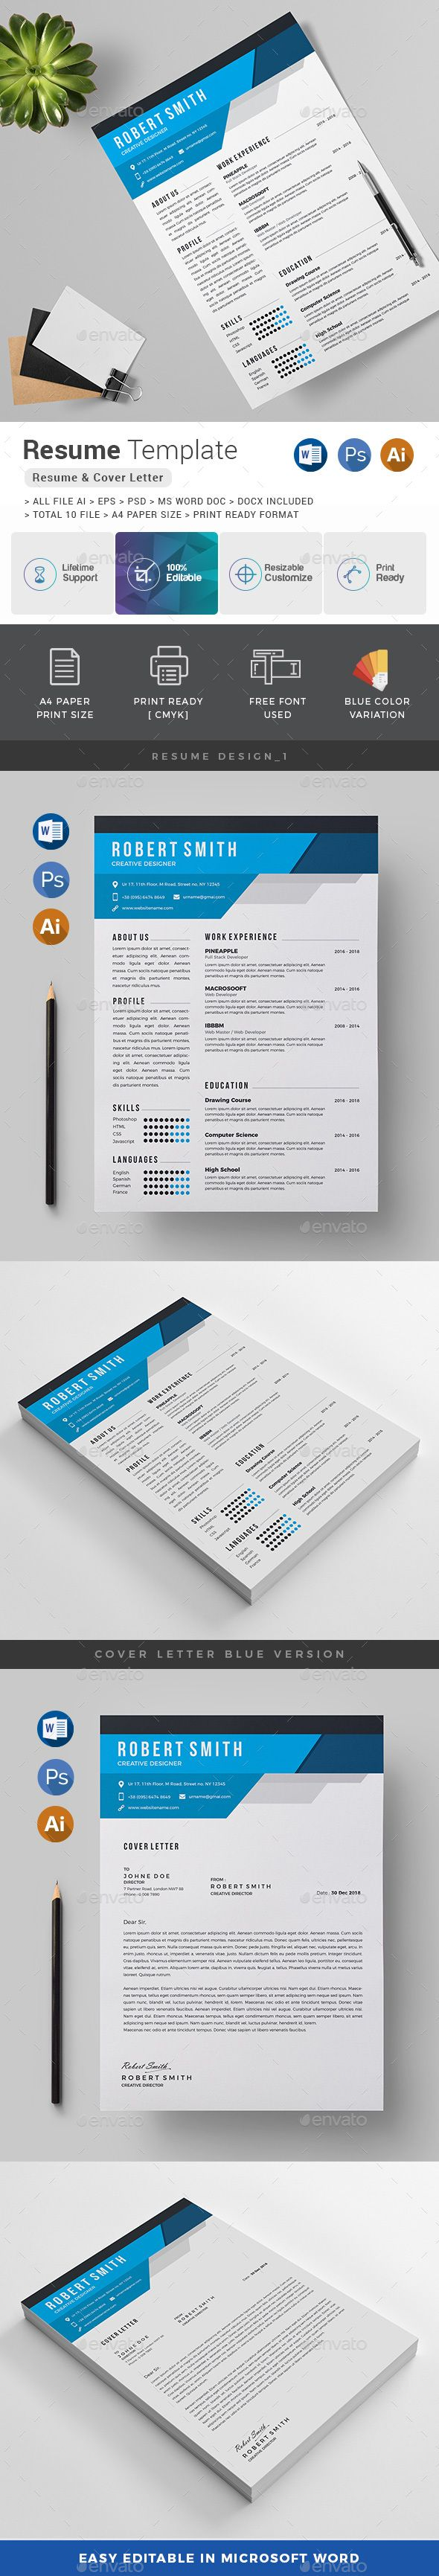 Best 25+ Resume fonts ideas on Pinterest | Resume ideas, Resume ...